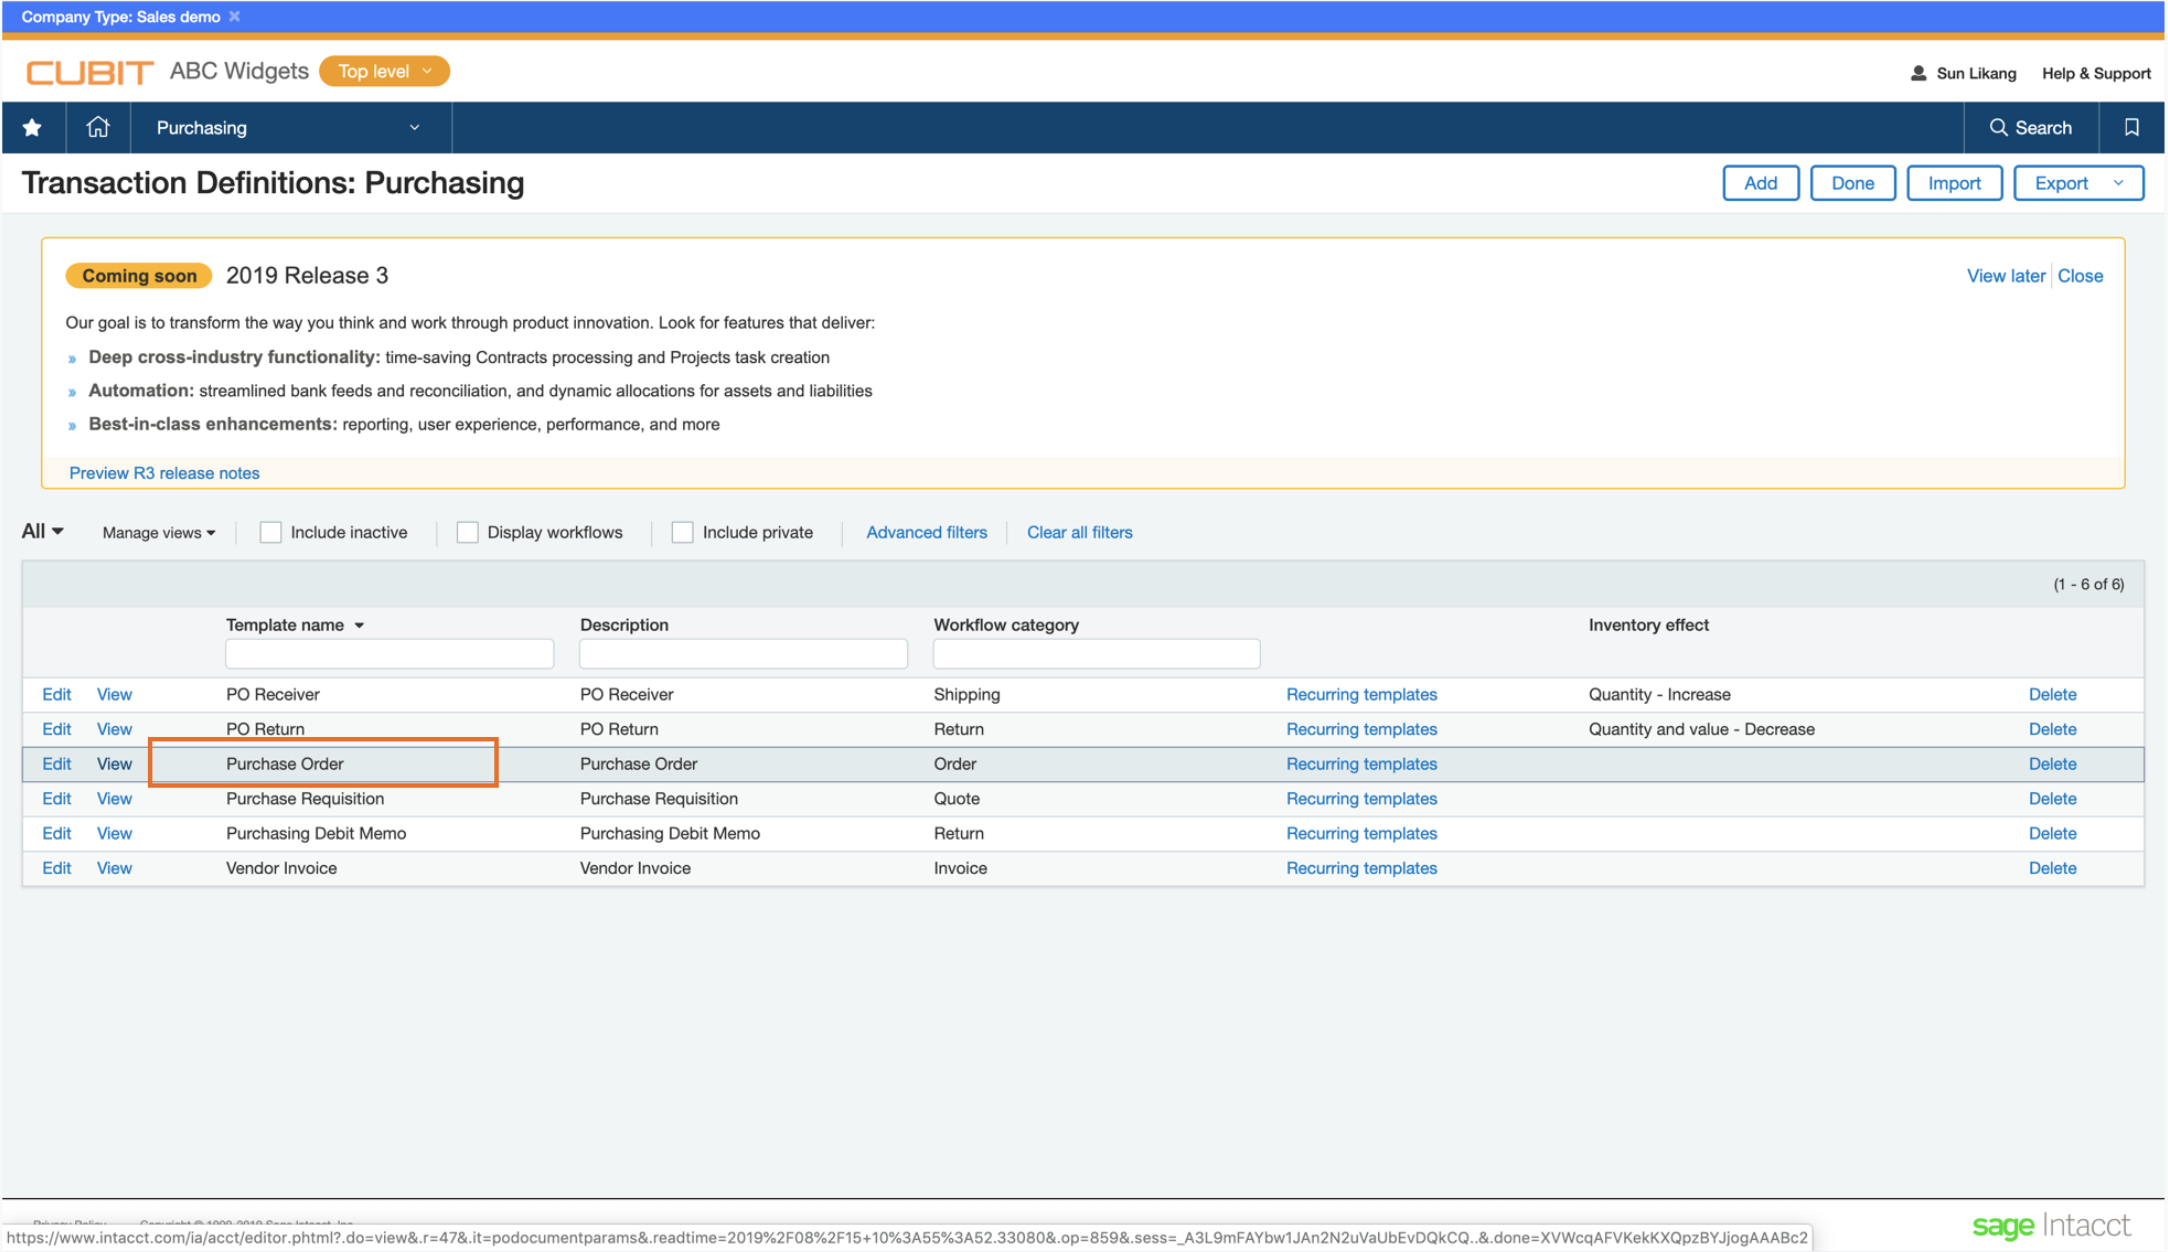 Transaction Definitions page in Intacct - PO